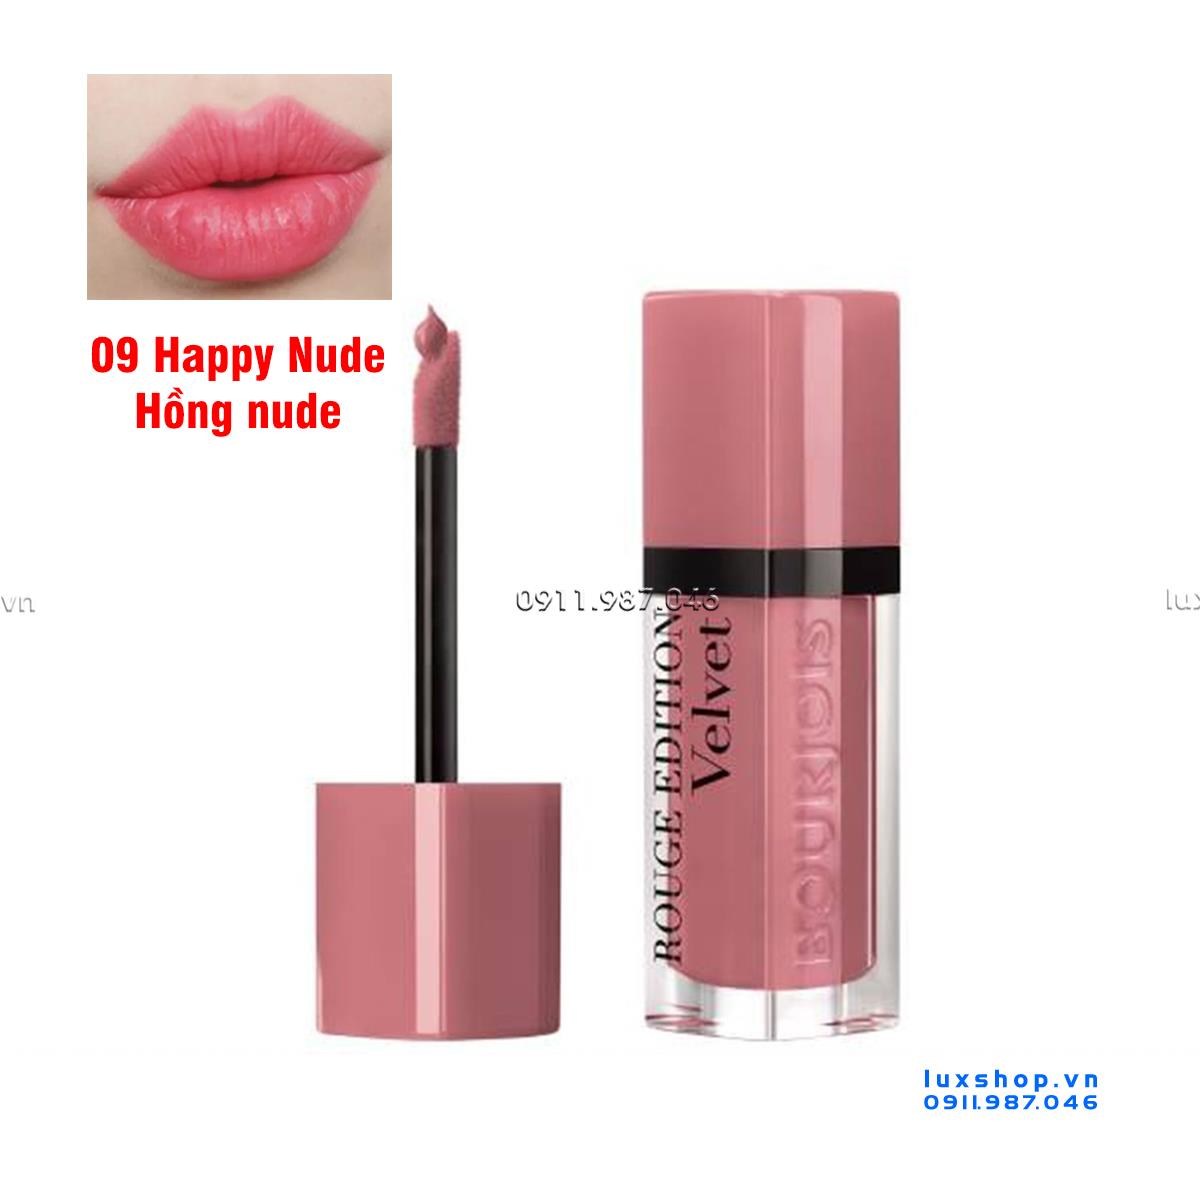 son-kem-bourjois-velvet-09-happy-nude-mau-hong-nude-chinh-hang-phap-pn102026